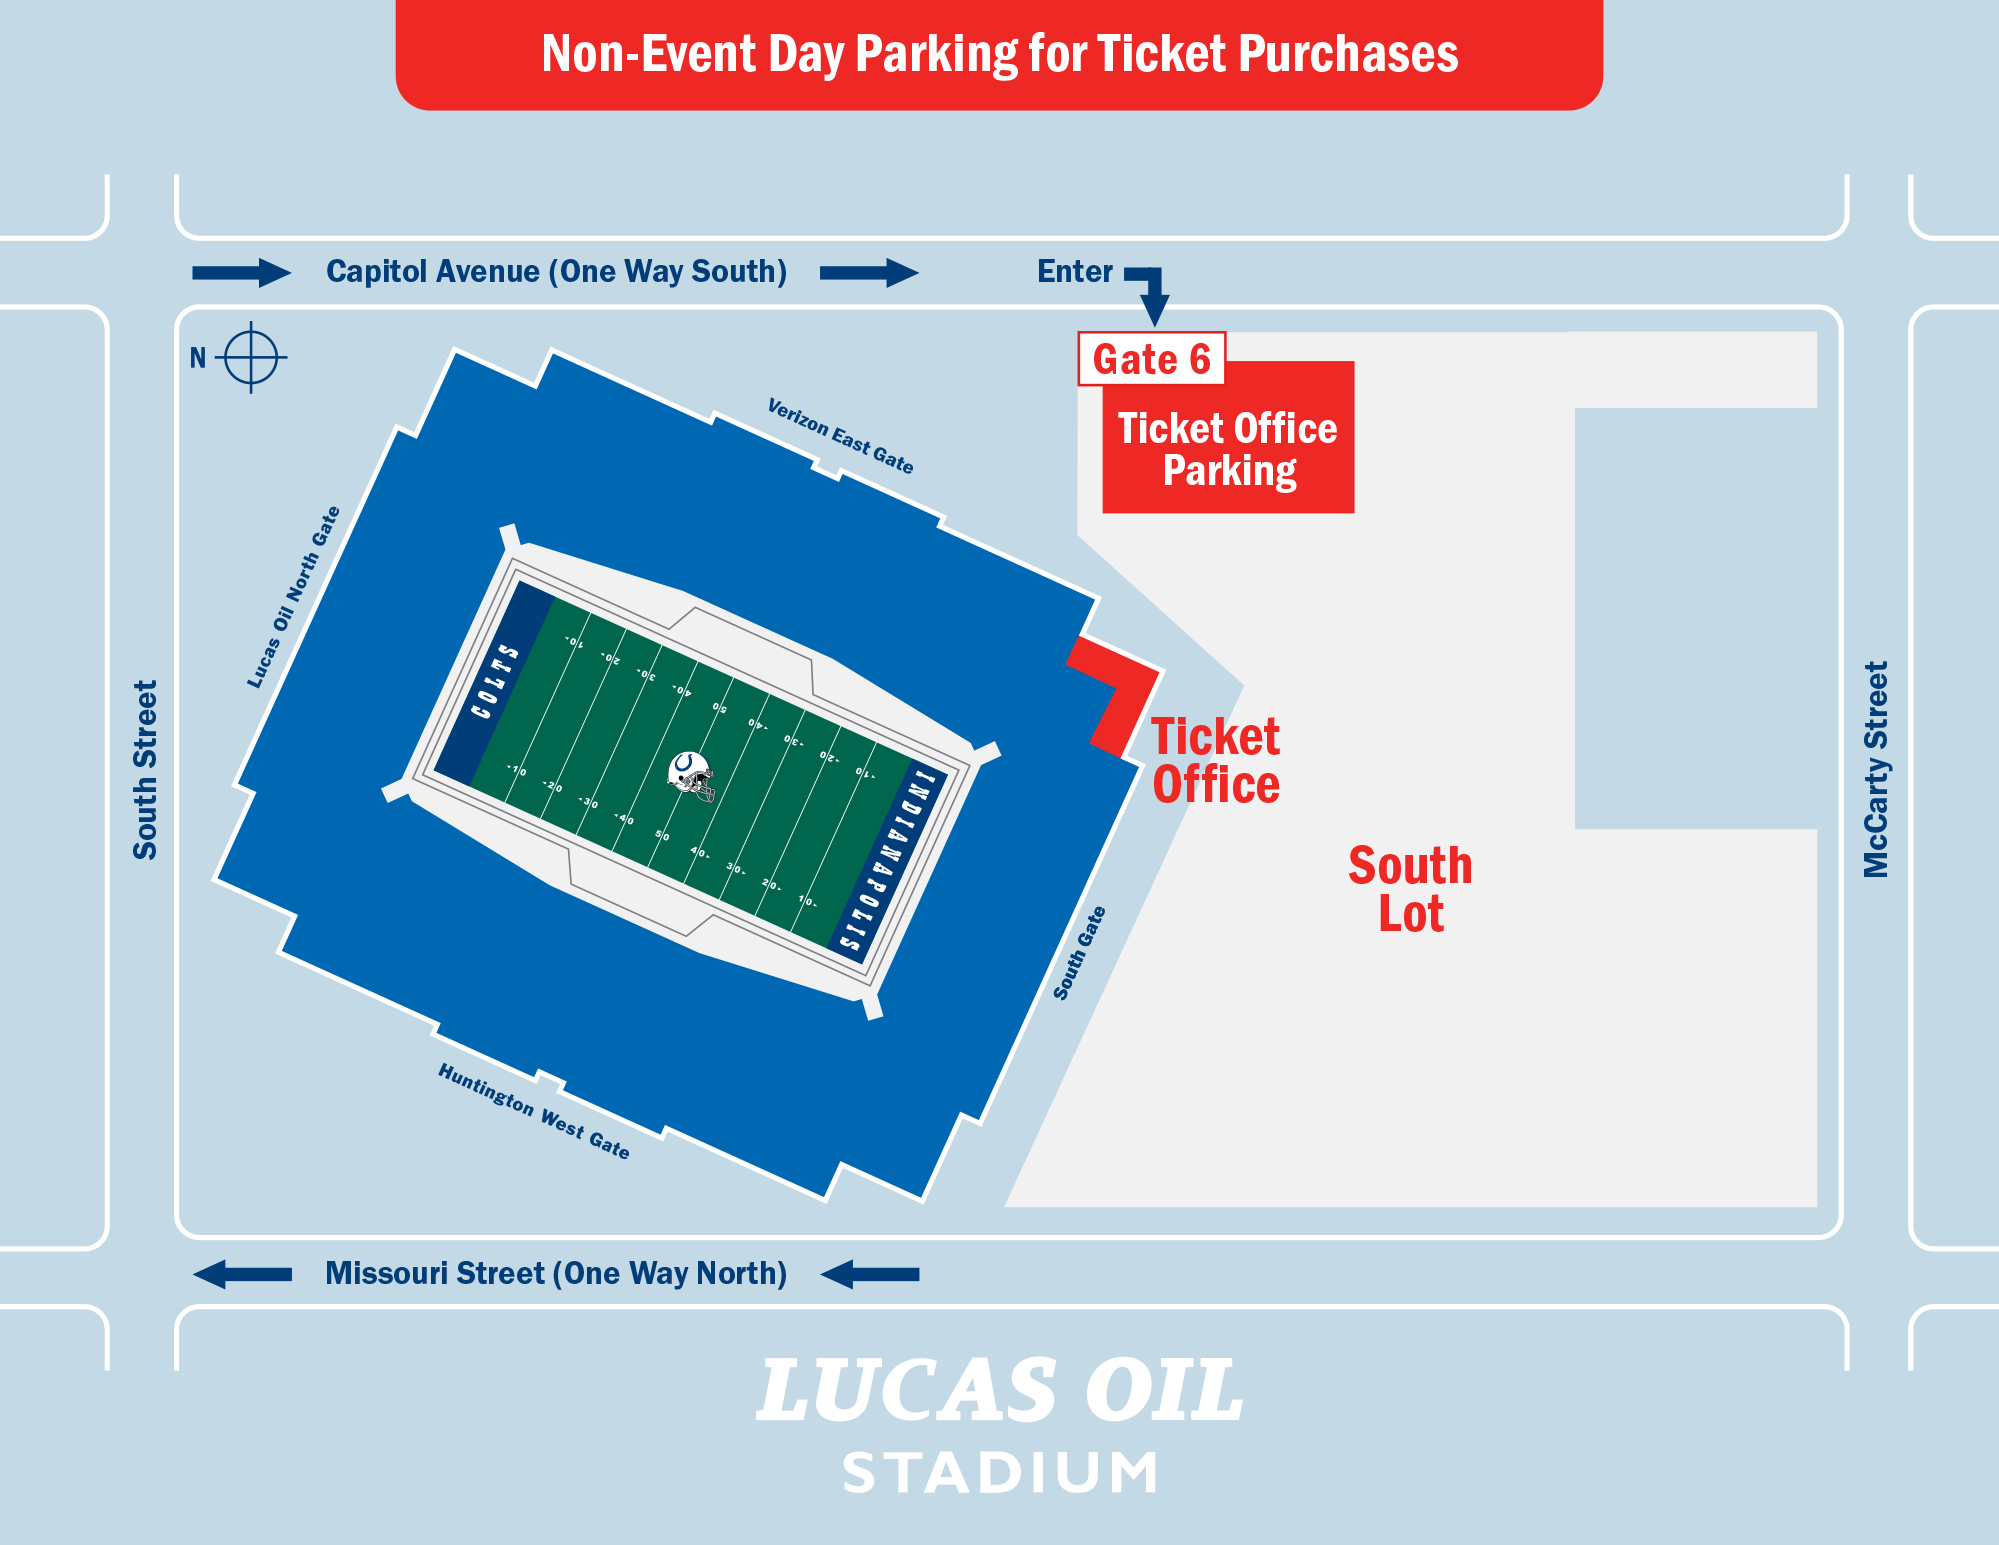 Lucas Oil Stadium Non-event Day Parking for Ticket Purchases